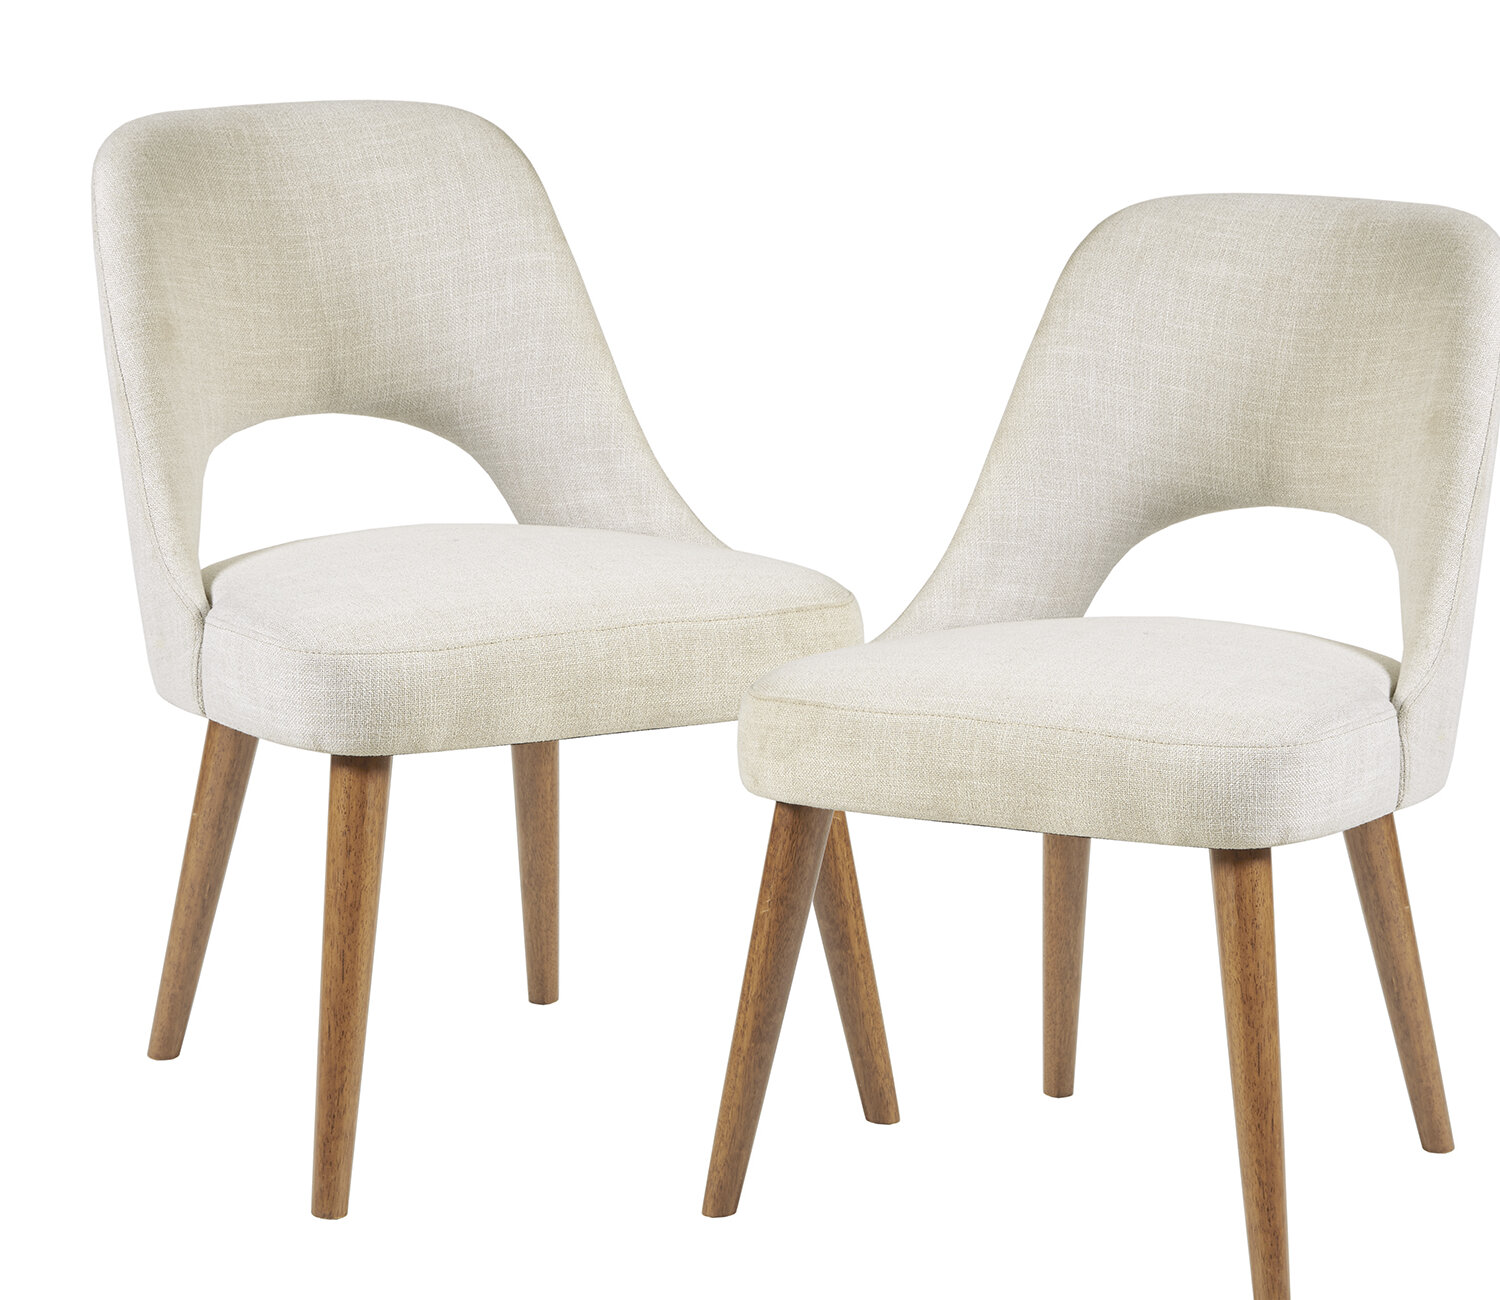 Berardi Upholstered Dining Chair